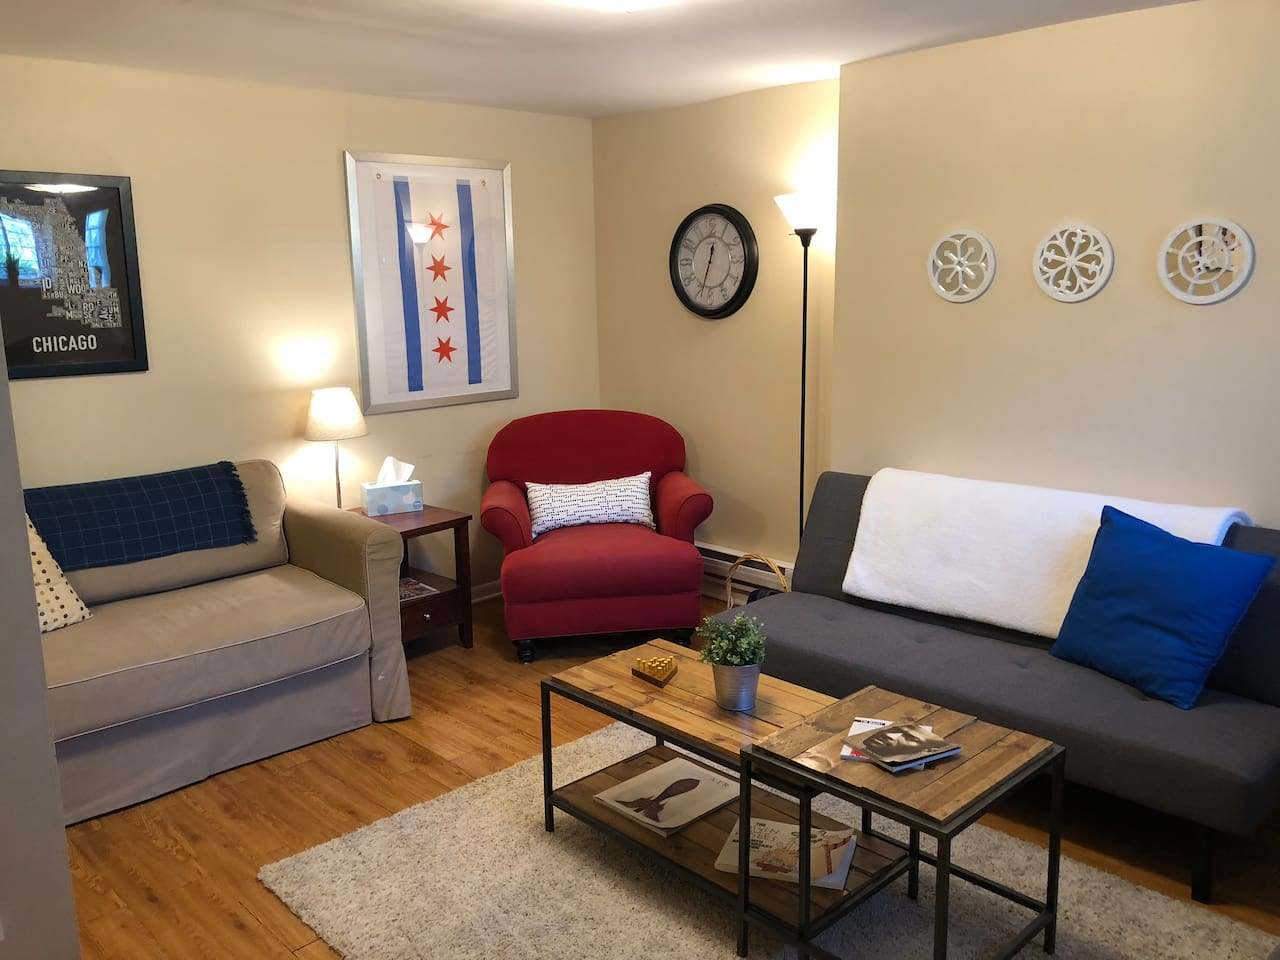 Living room with IKEA bed that converts into a twin bed and a small futon